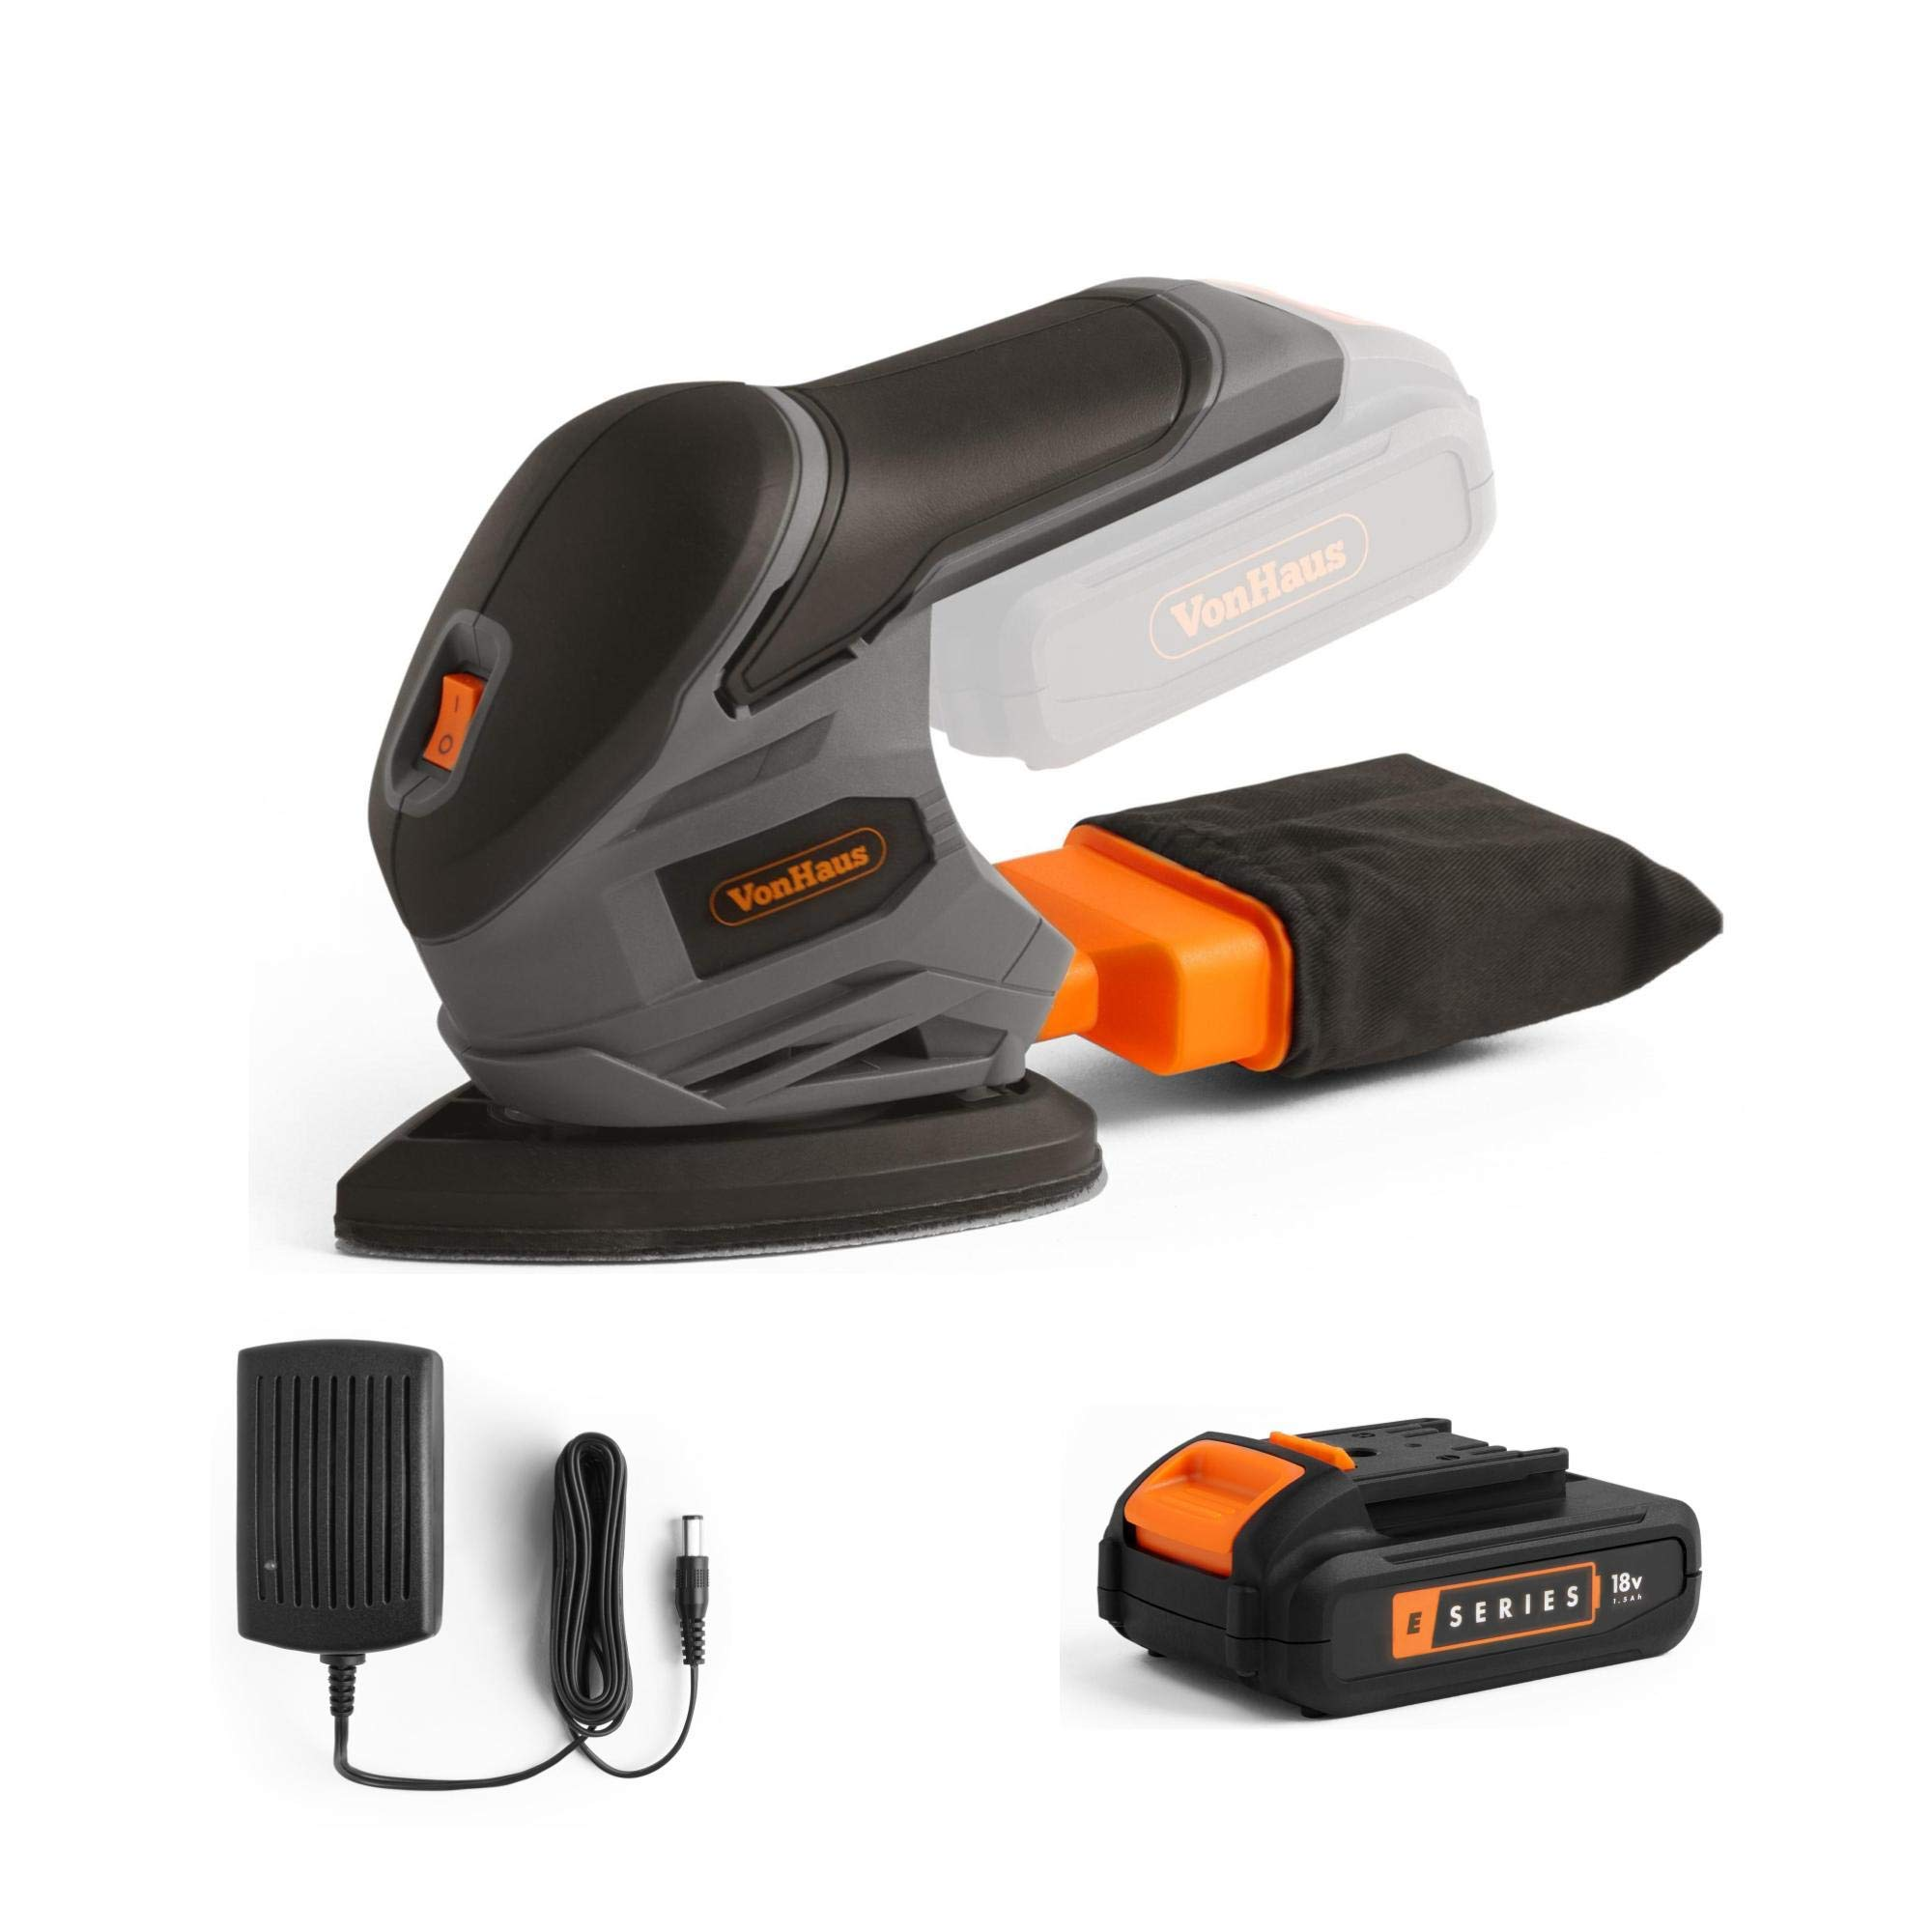 VonHaus Cordless Sander E-Series 18V – Detail Palm Sanding Machine - 1.5 Ah Battery and Charger Included